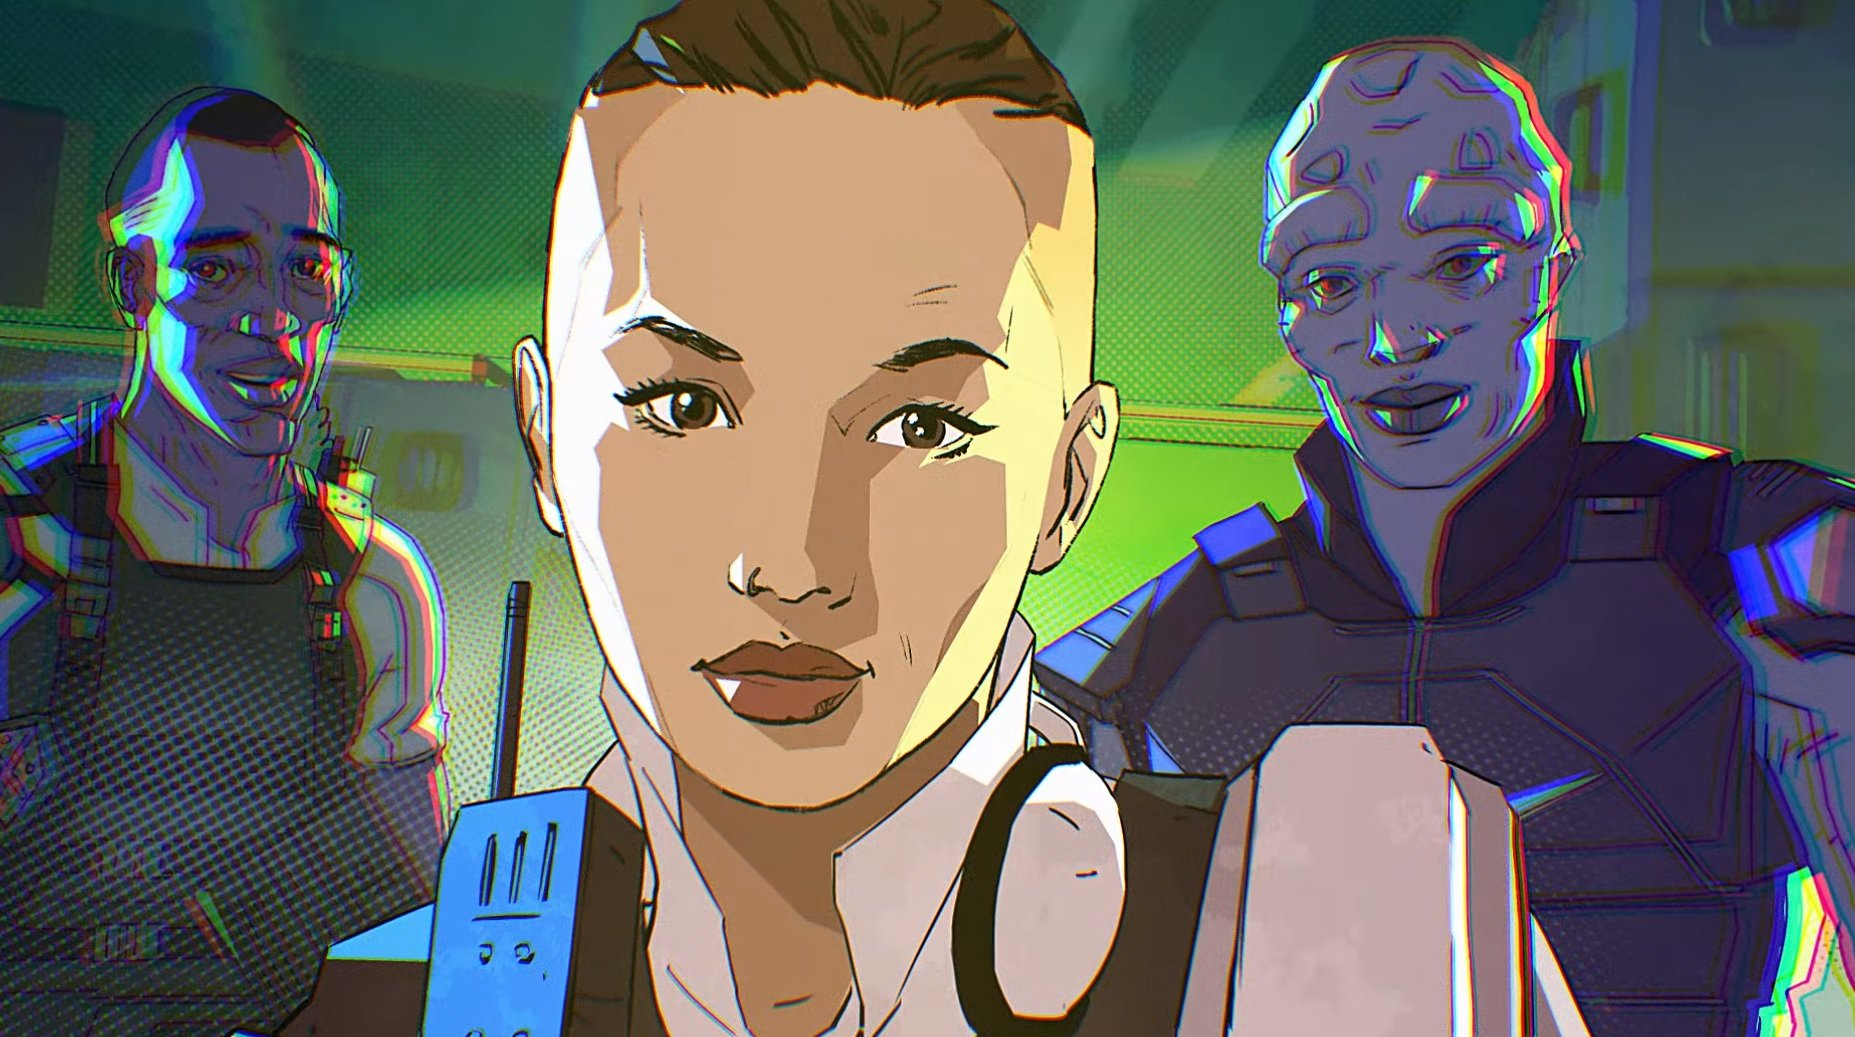 A new XCOM spinoff game is coming very soon, and it's 10 bucks for a limited time screenshot